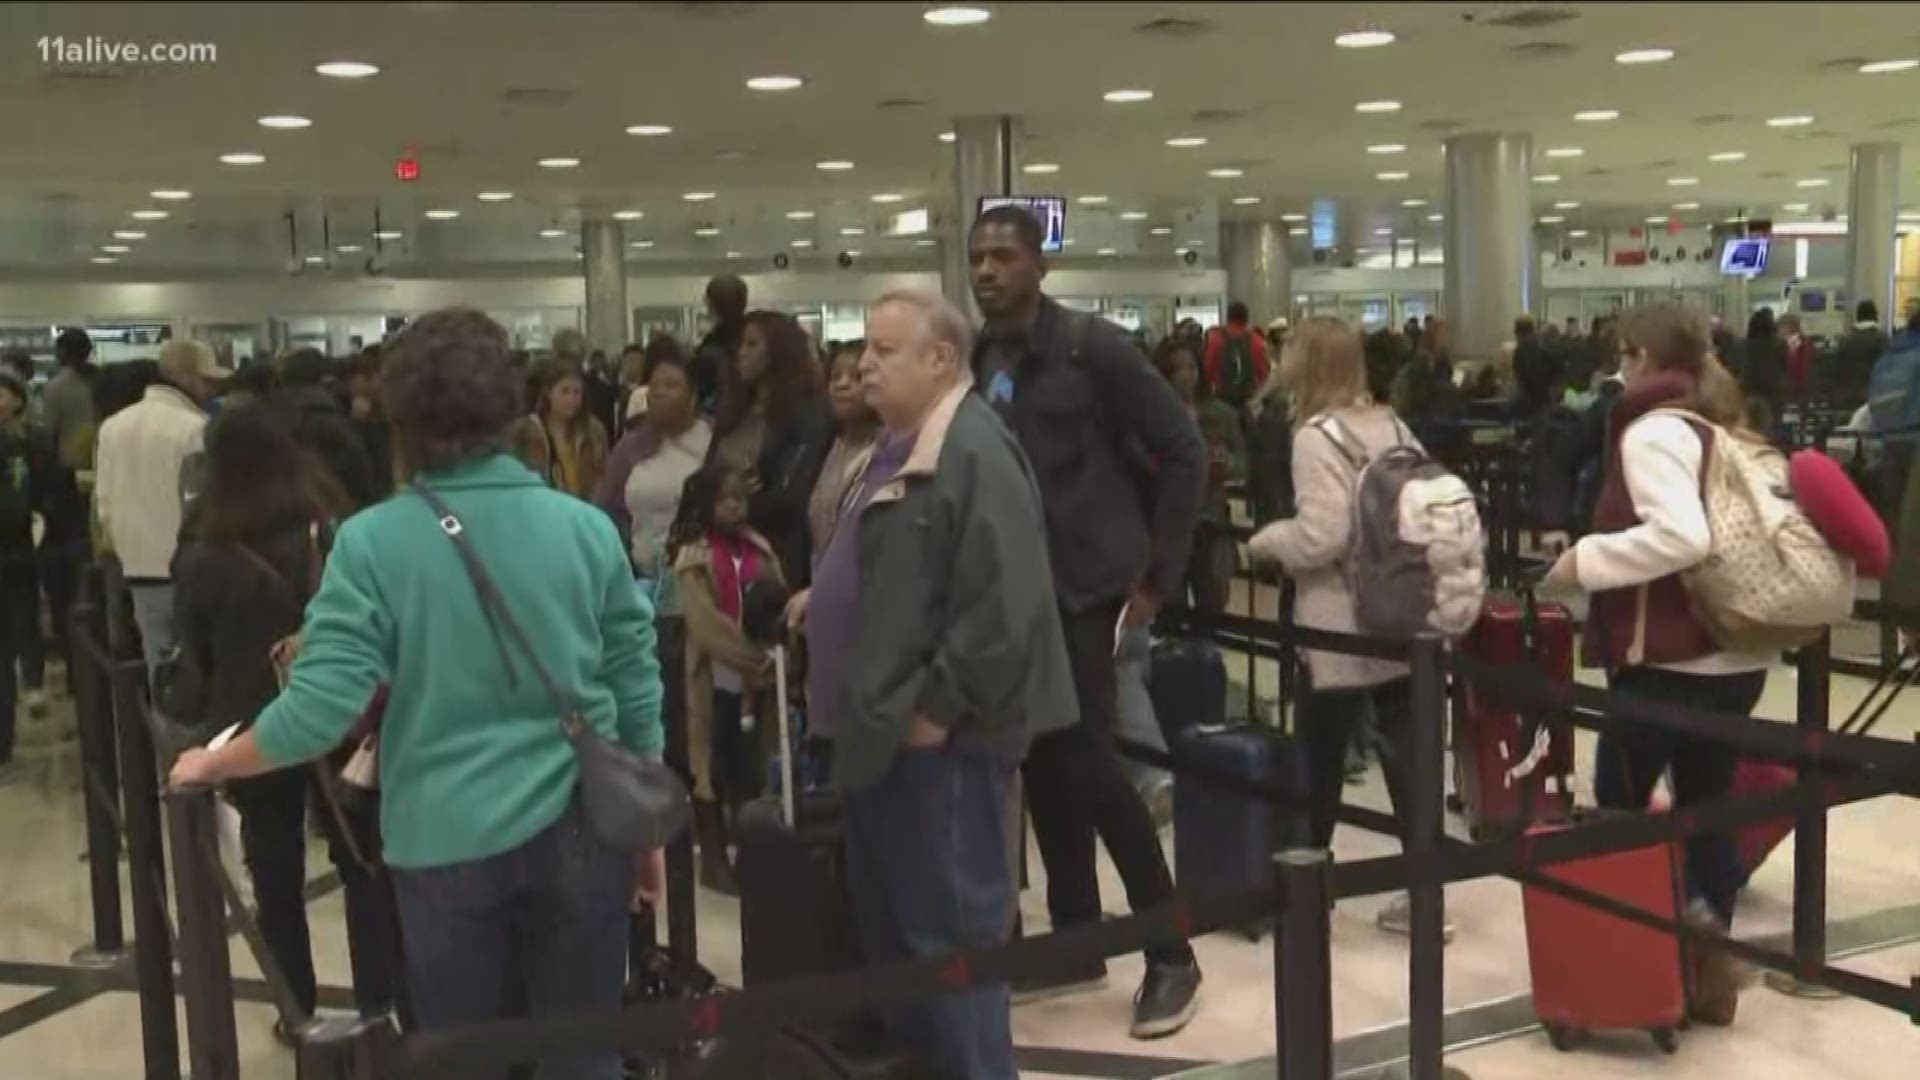 People Pack Atlanta Airport For Thanksgiving Travel Plans 11alive Com